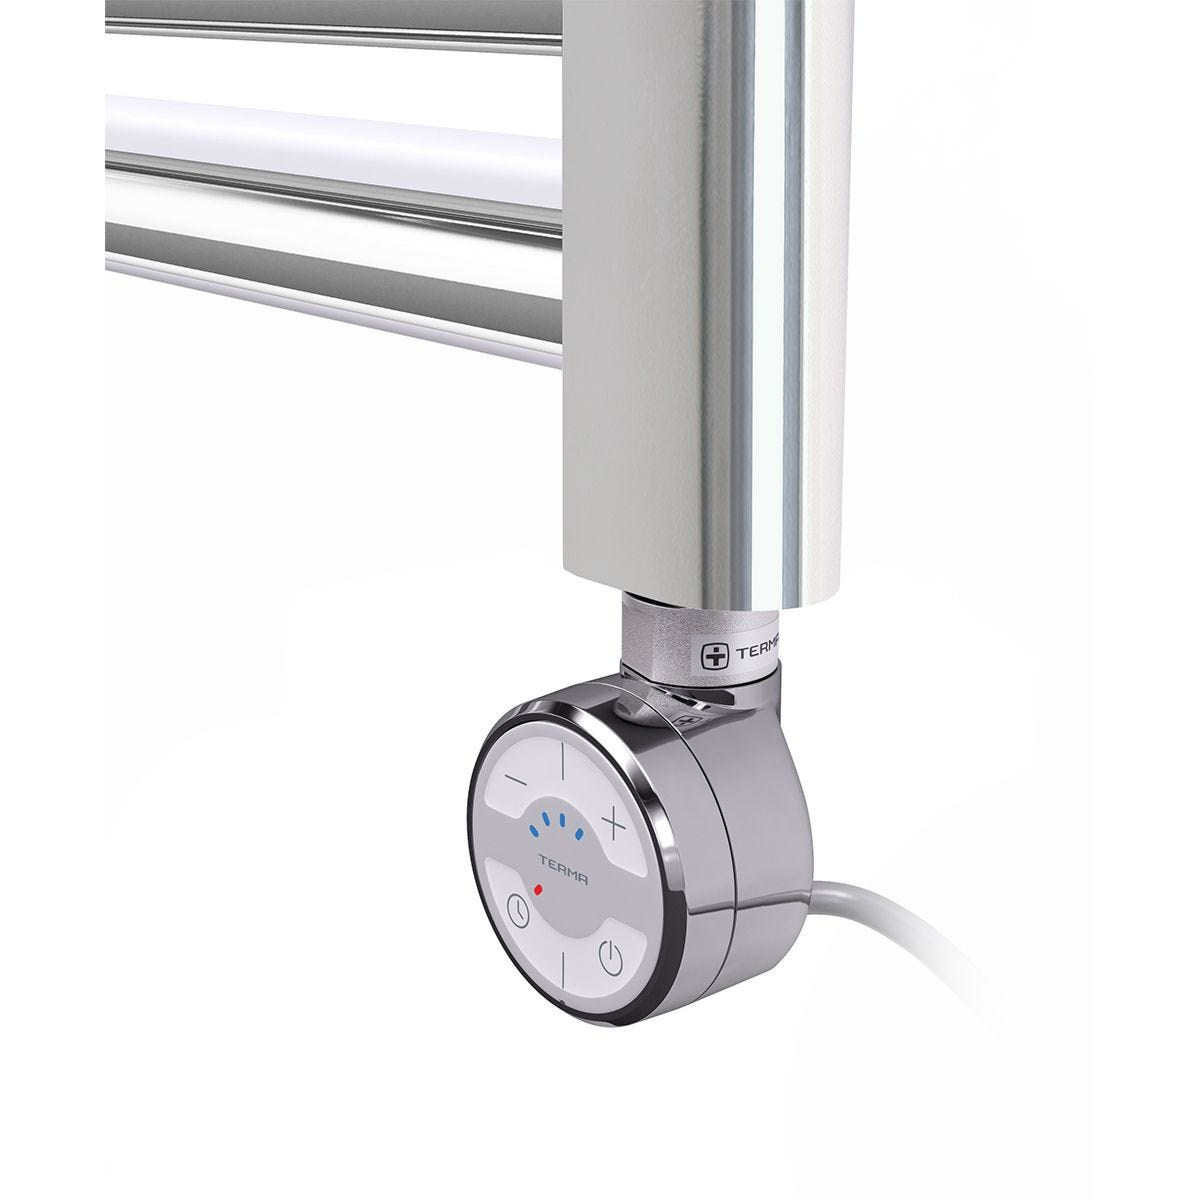 Terma Leo Electric Towel Rail with MOA Thermostatic Element Chrome 600 x 400mm 120W